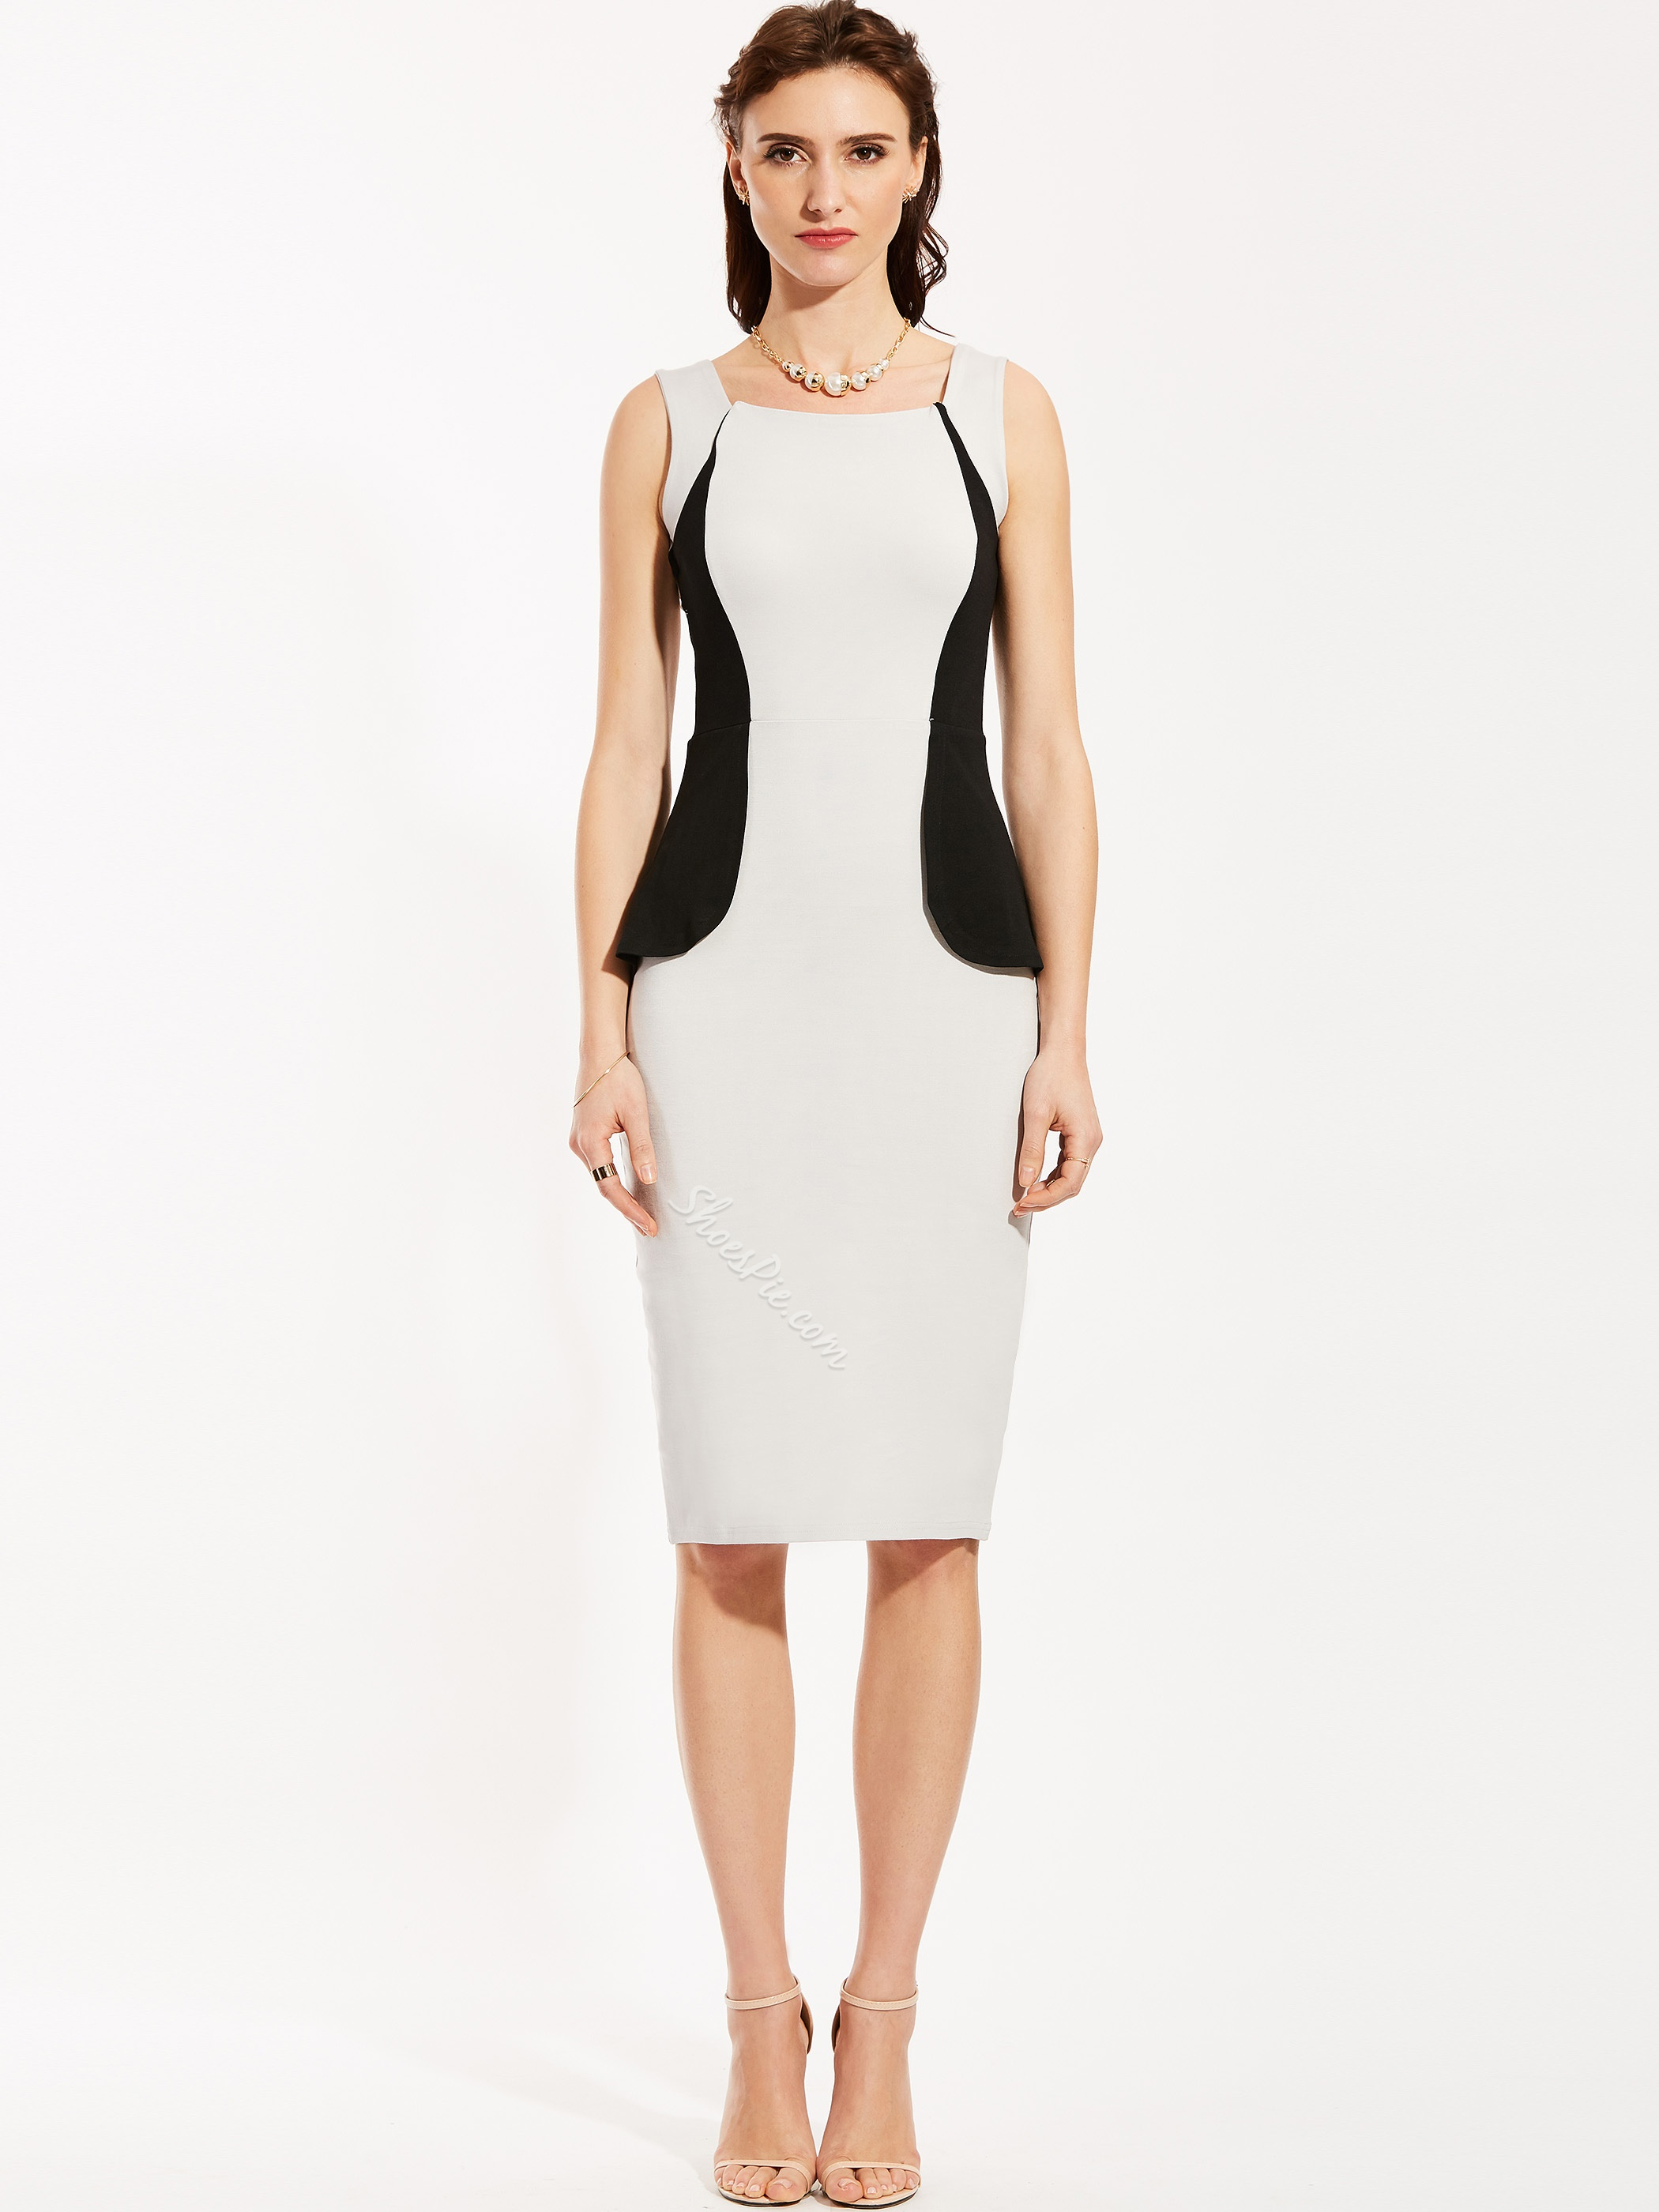 Square Neck Sleeveless Backless Pencil Dress